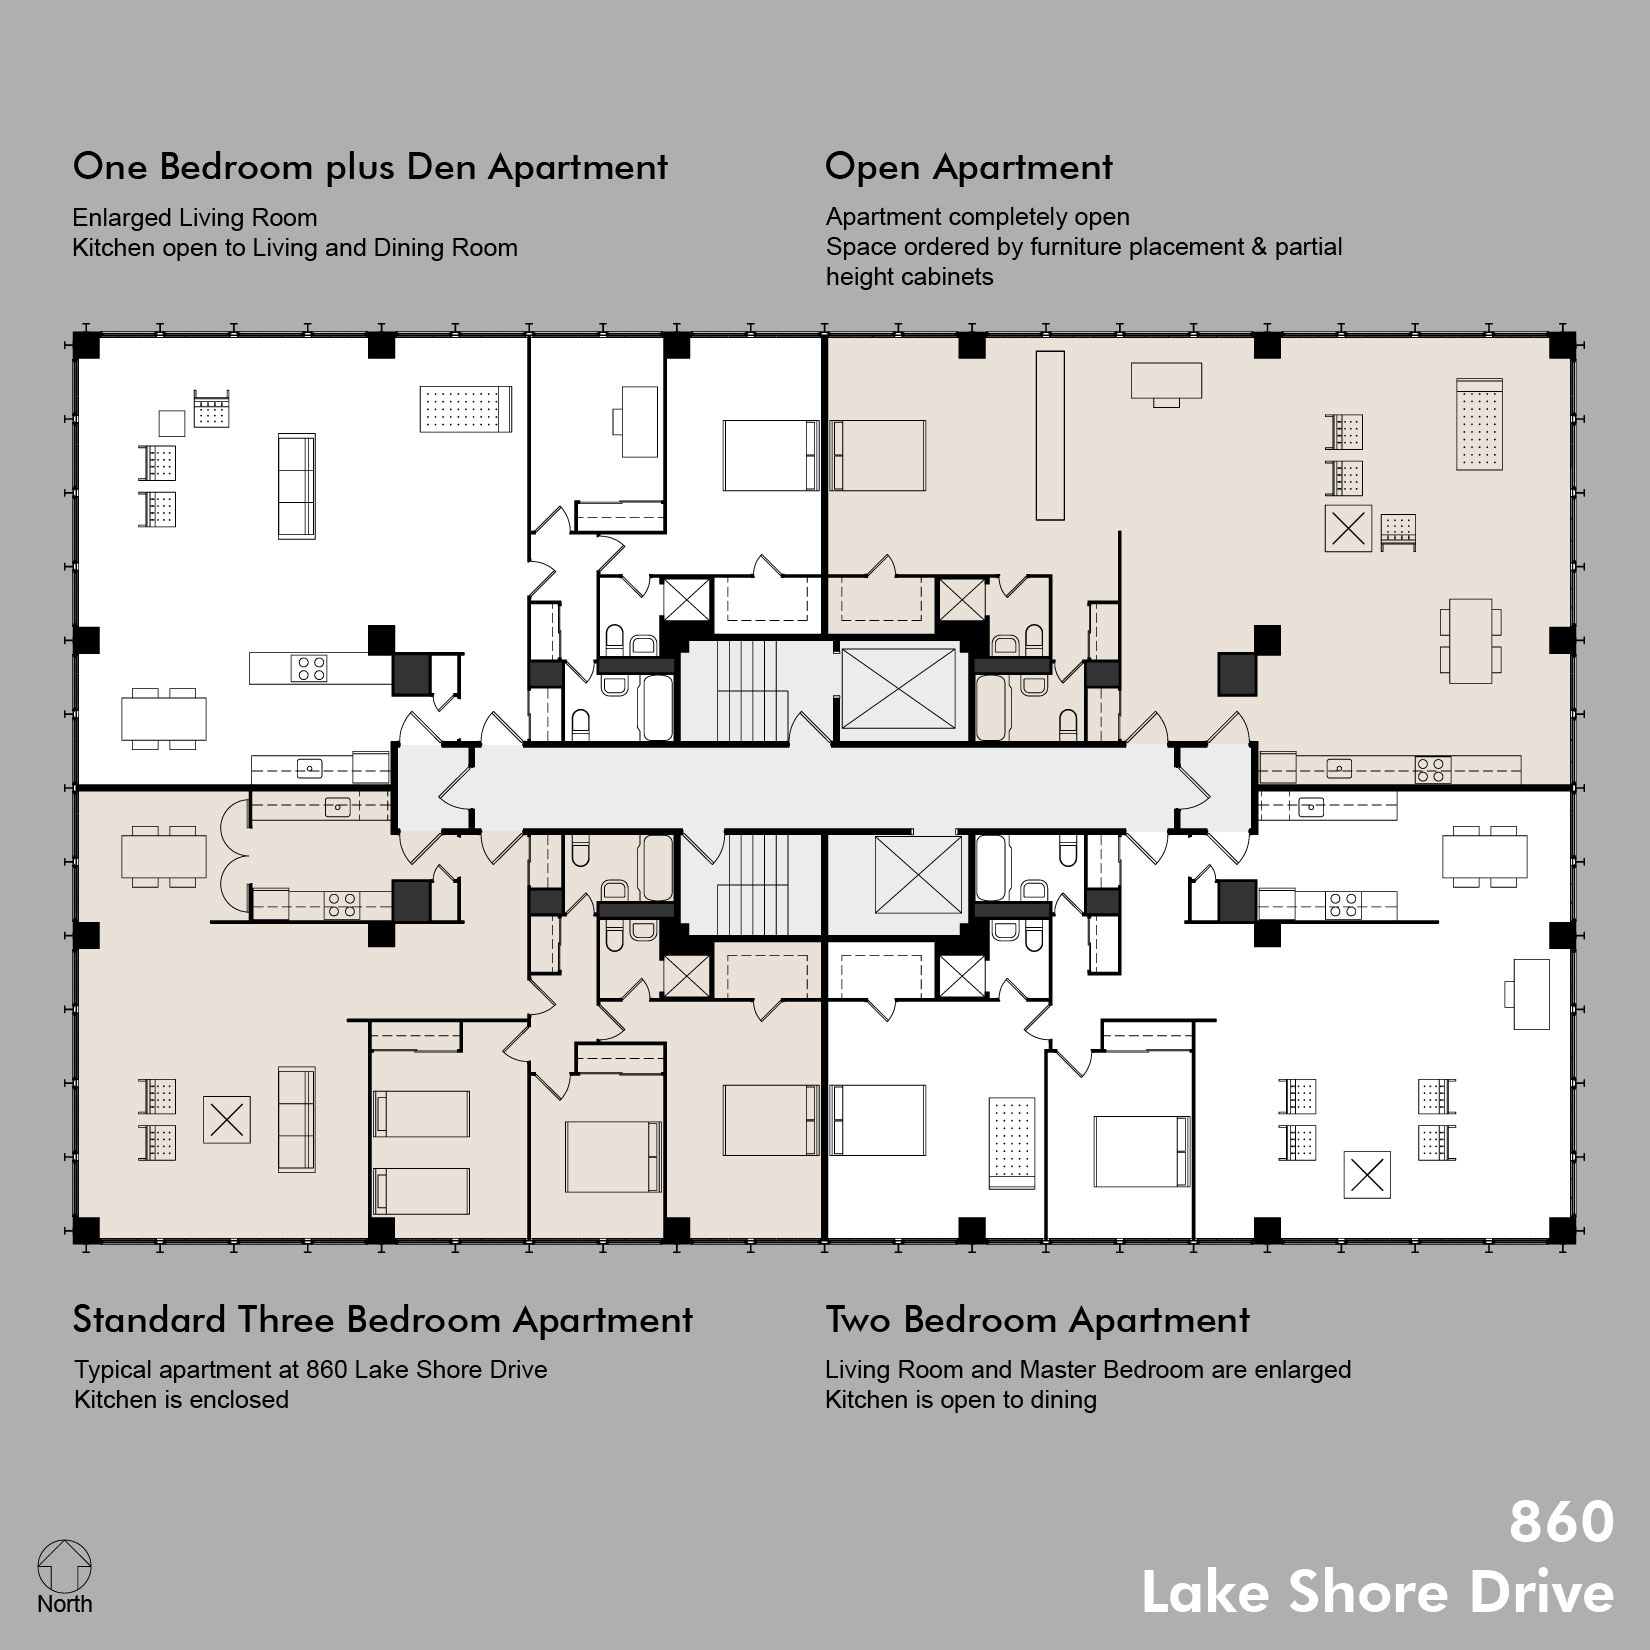 860 floor plans including standard apt for 4 apartment building plans